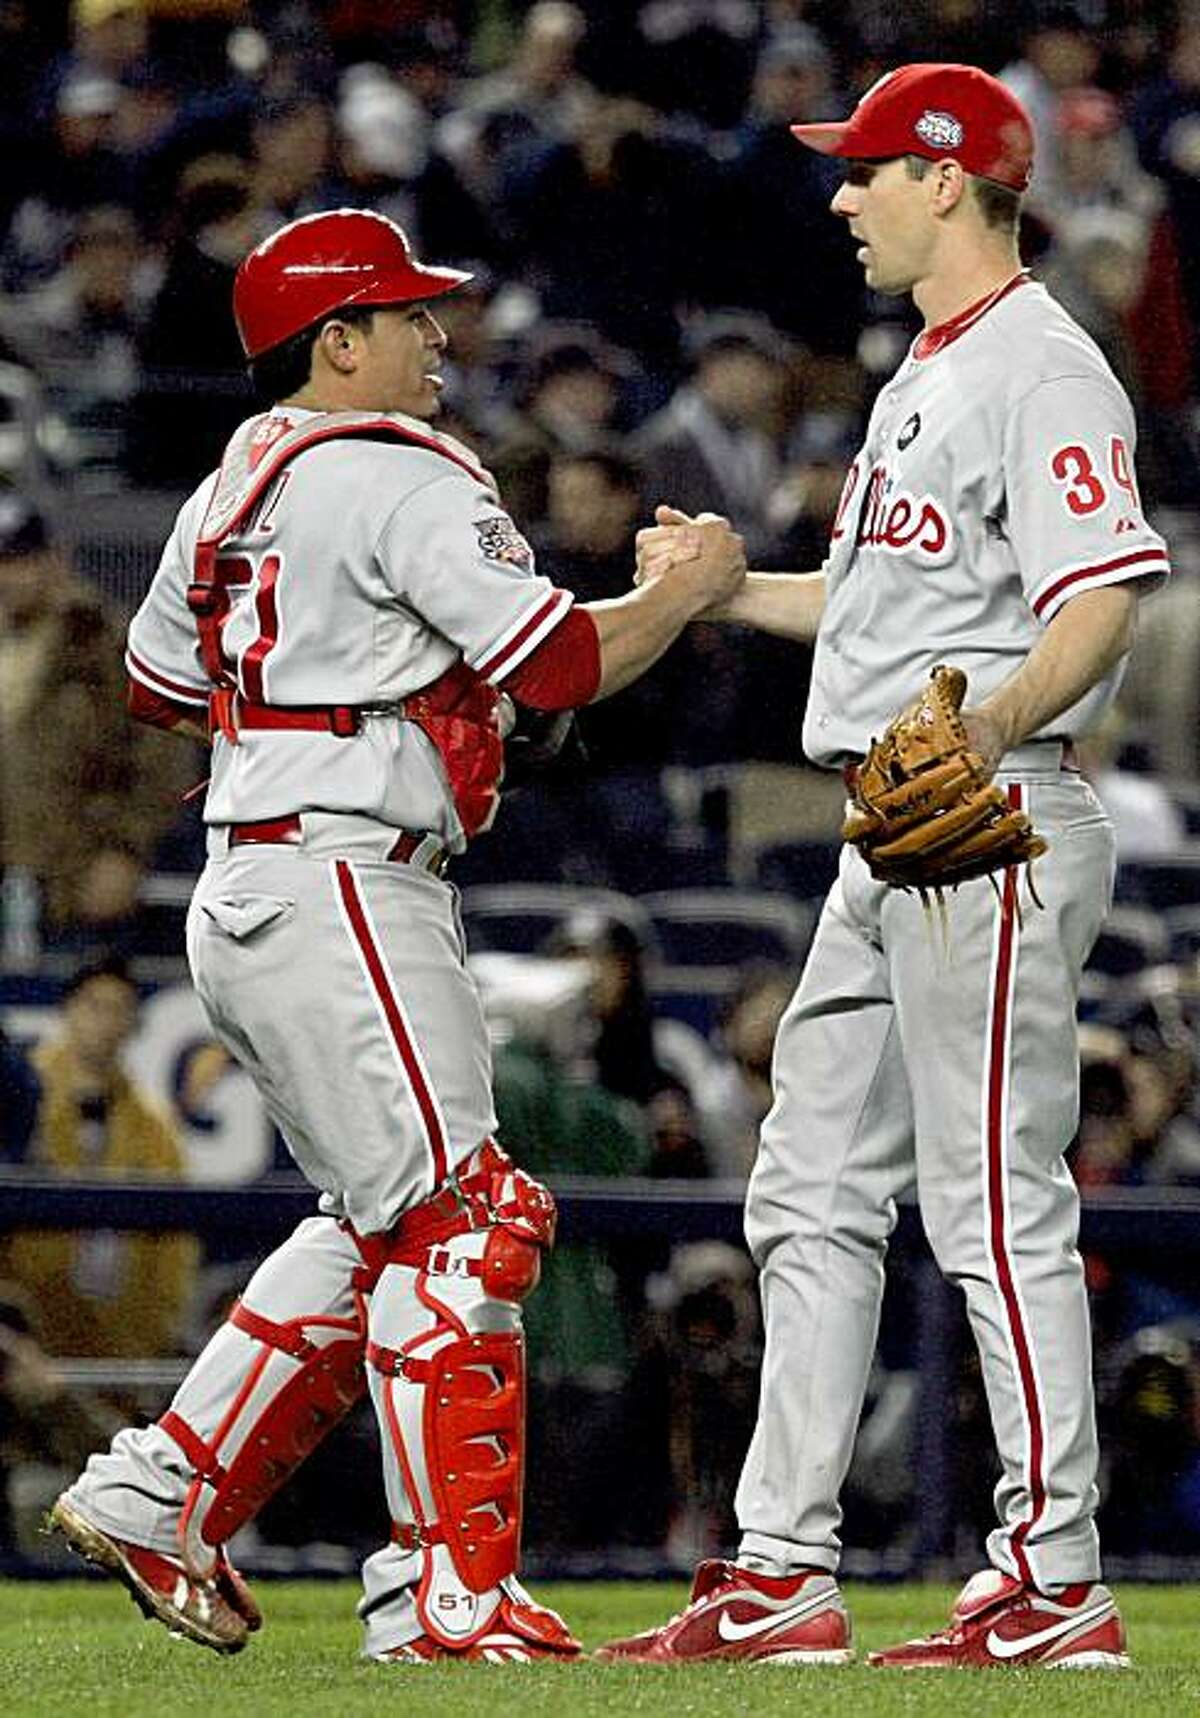 NEW YORK - OCTOBER 28: (L-R) Carlos Ruiz #51 and Cliff Lee #34 of the Philadelphia Phillies celebrate after their 6-1 win against the New York Yankees in Game One of the 2009 MLB World Series at Yankee Stadium on October 28, 2009 in the Bronx borough of New York City. (Photo by Jim McIsaac/Getty Images)